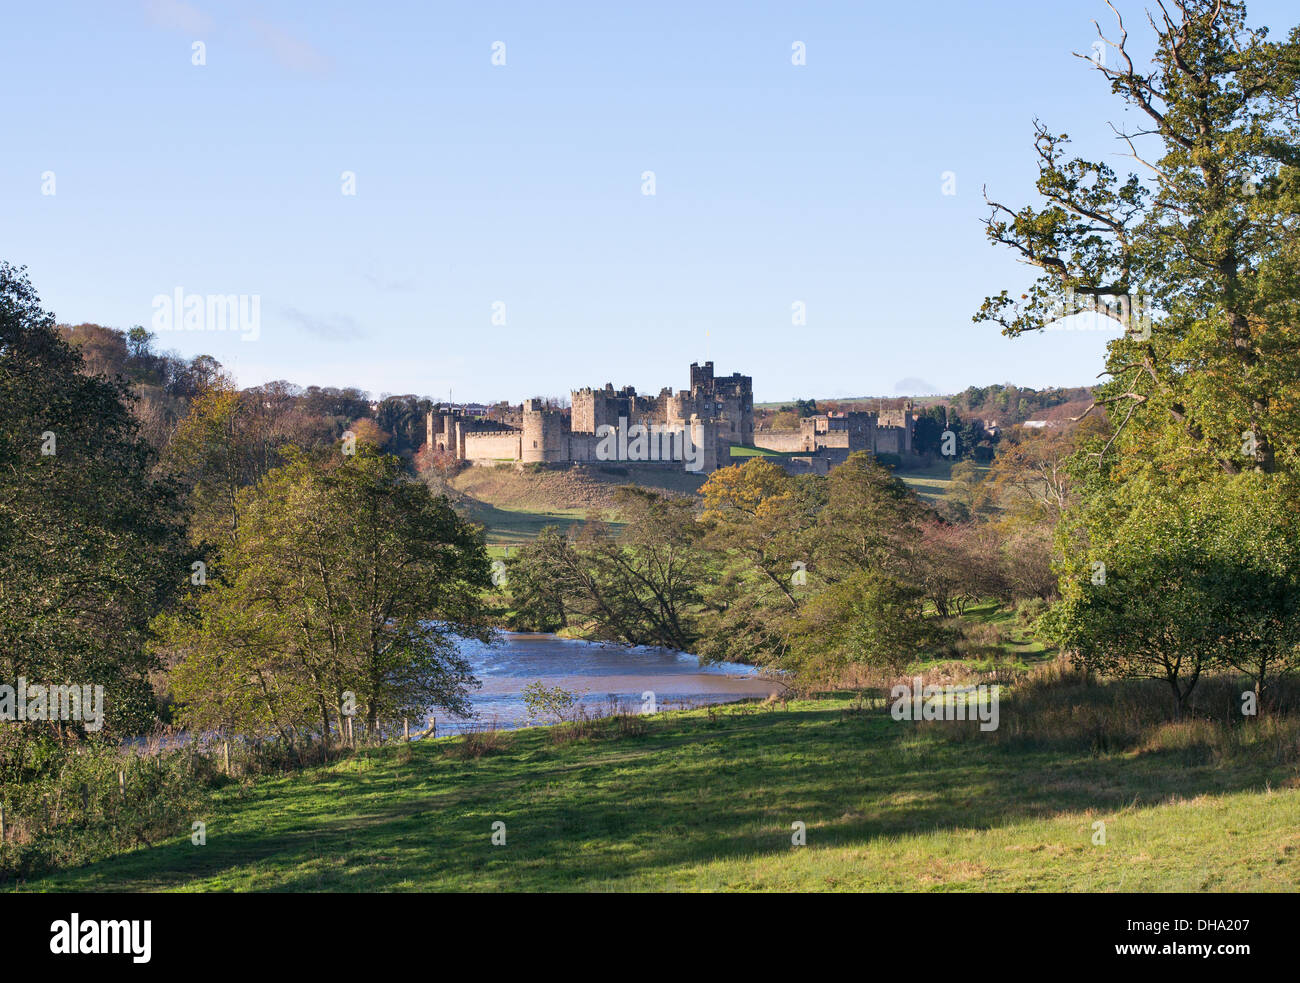 The river Aln passing Alnwick castle, Northumberland, England, UK - Stock Image